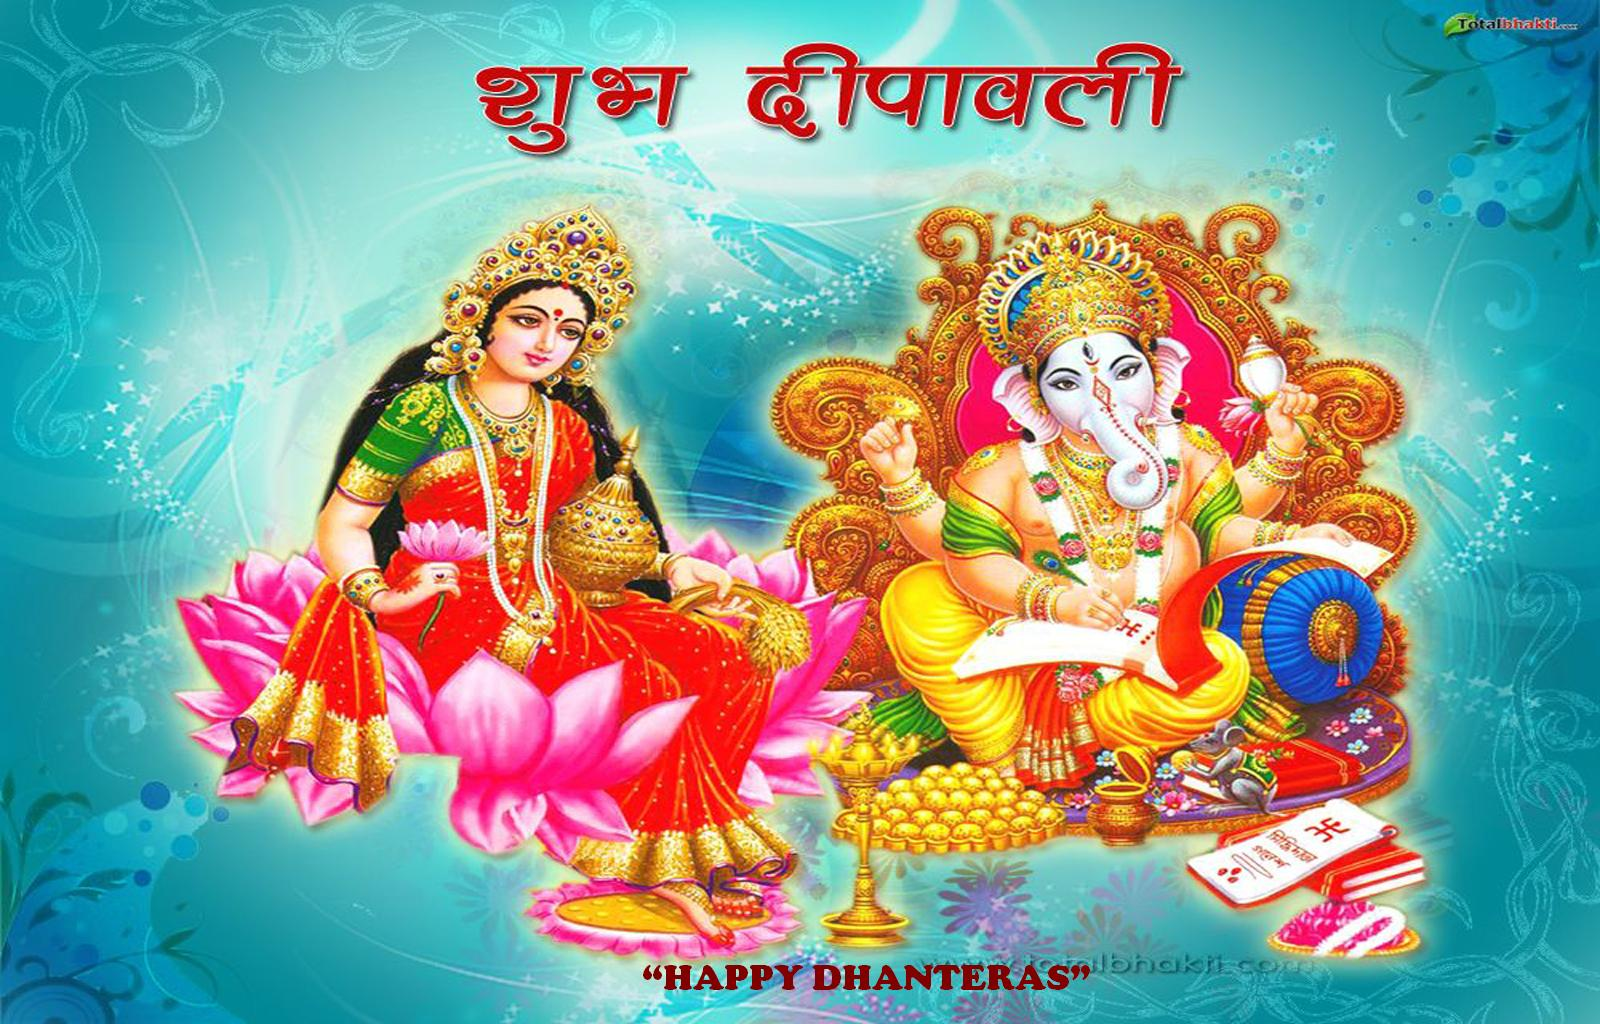 Happy Diwali And Dhanteras Wallpapers: Happy Dhanteras Wishes- Laxmiji Wallpapers